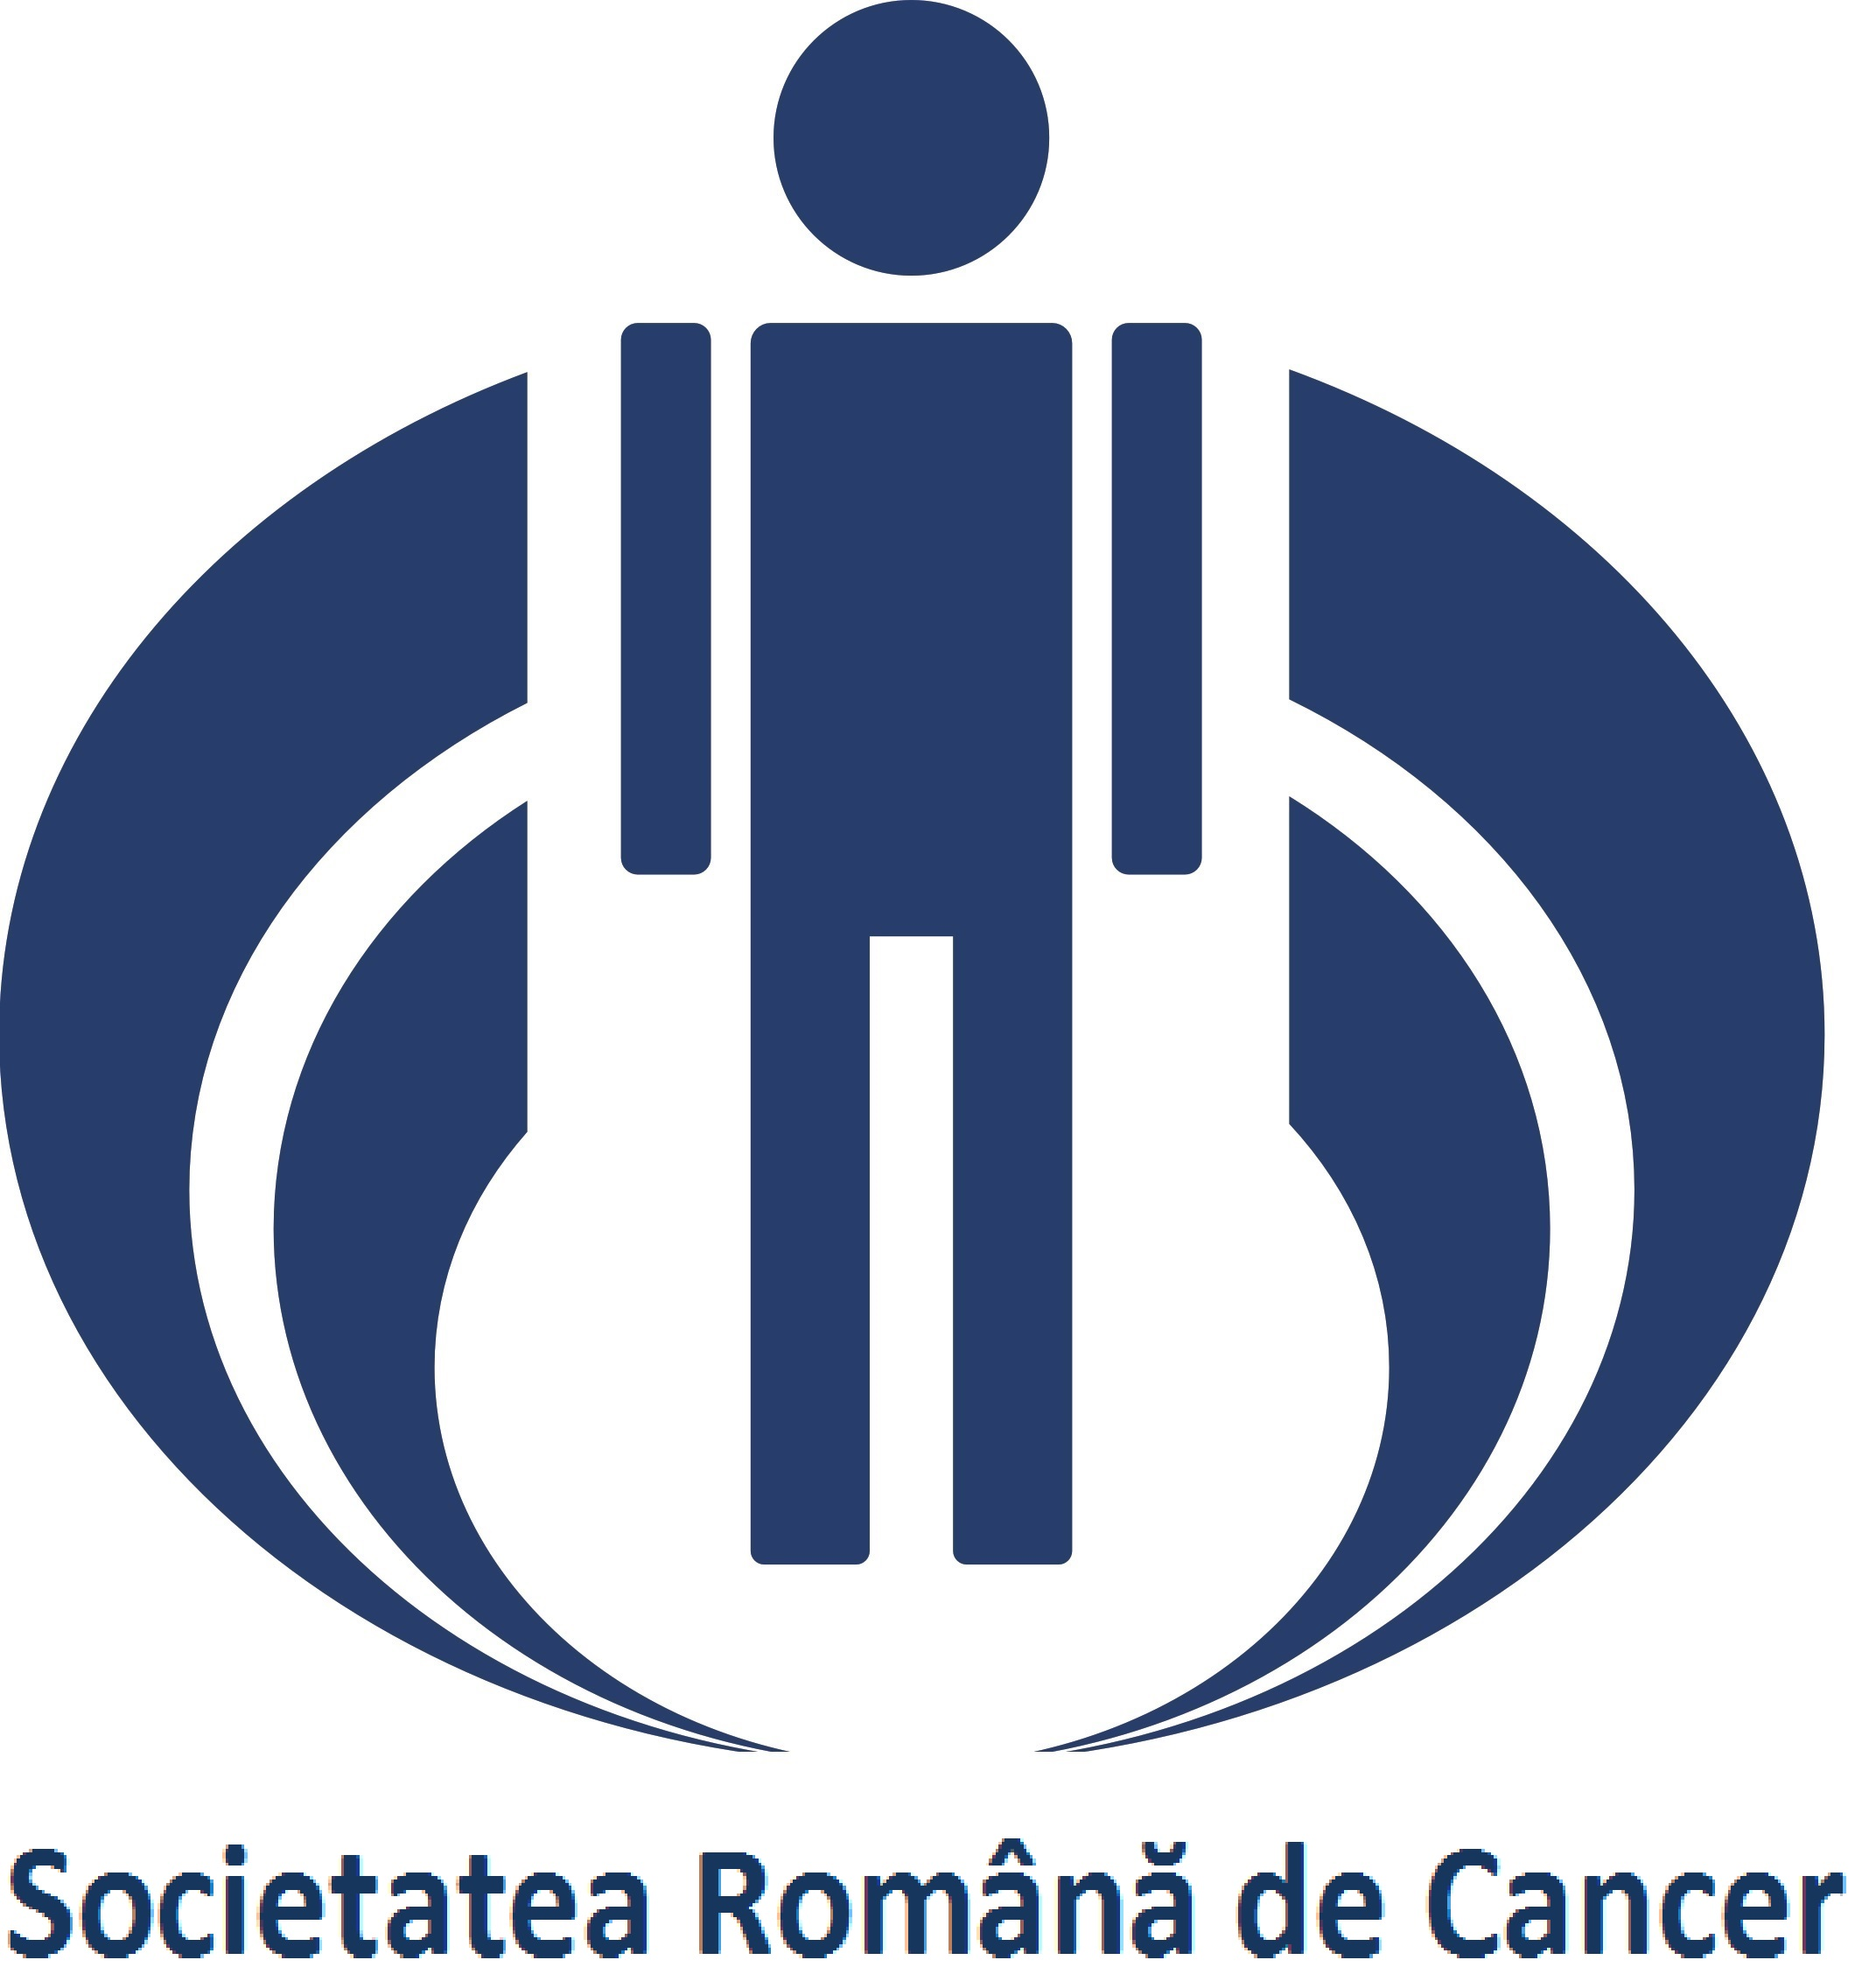 .Societatea Romana de Cancer logo